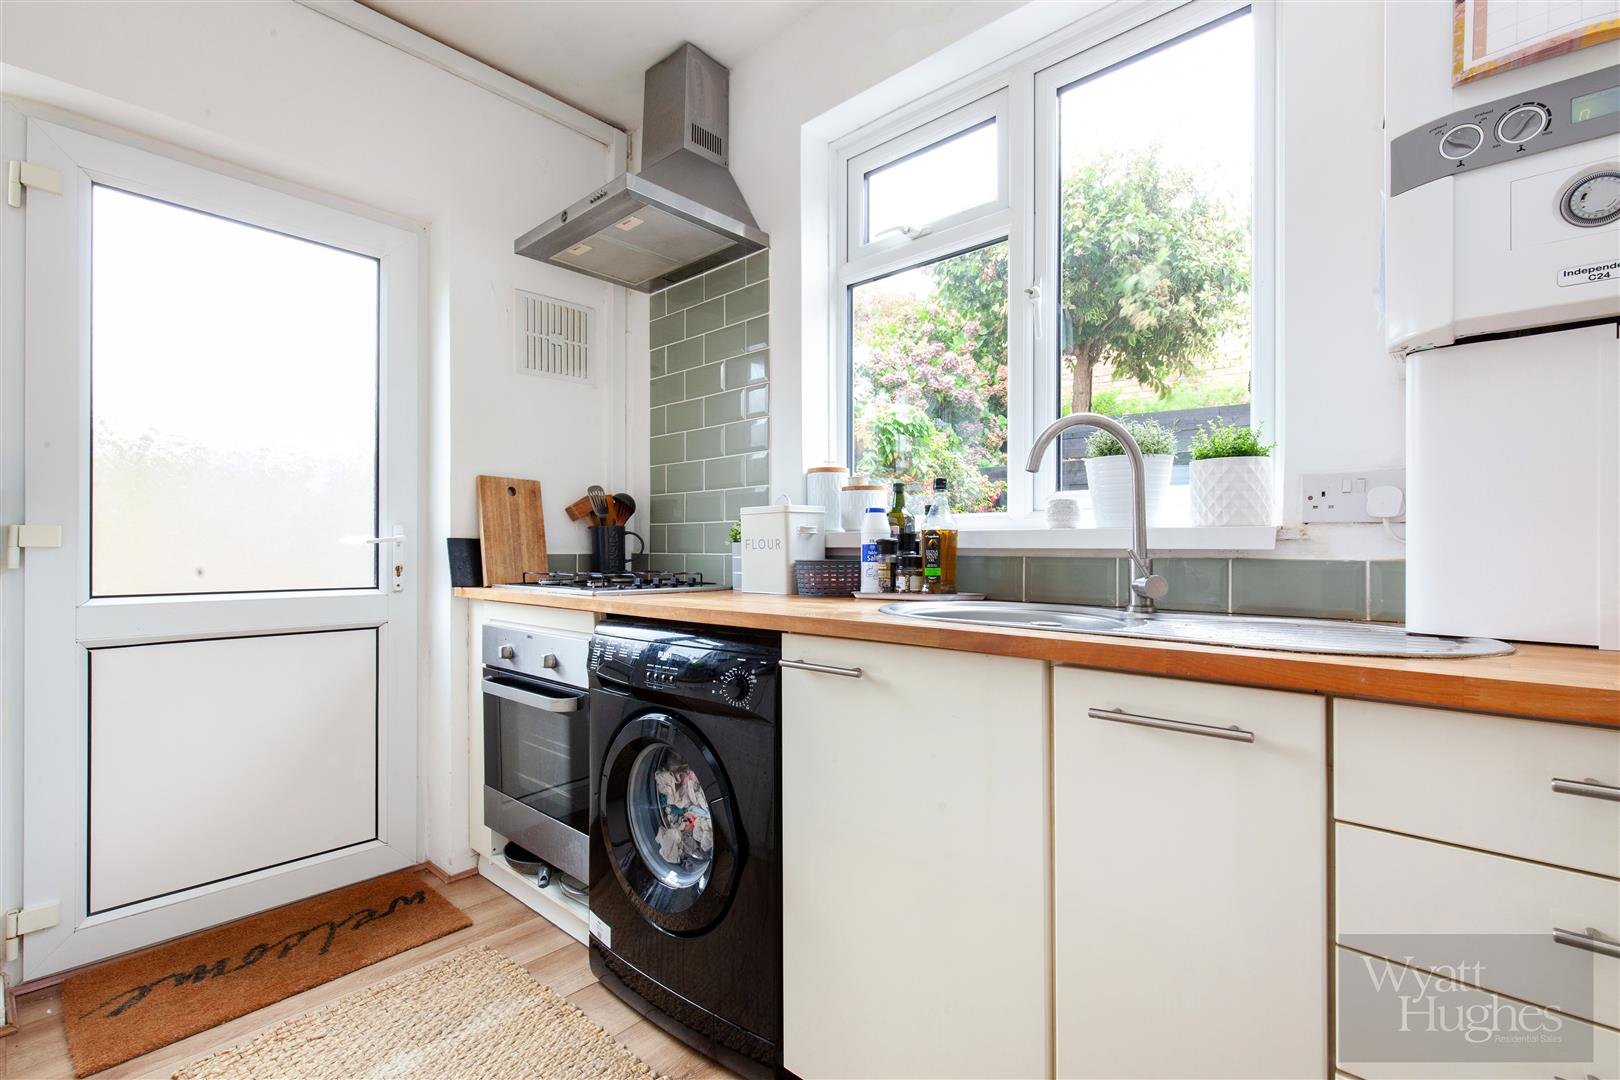 2 bed flat for sale in St. Pauls Place, St. Leonards-On-Sea  - Property Image 2